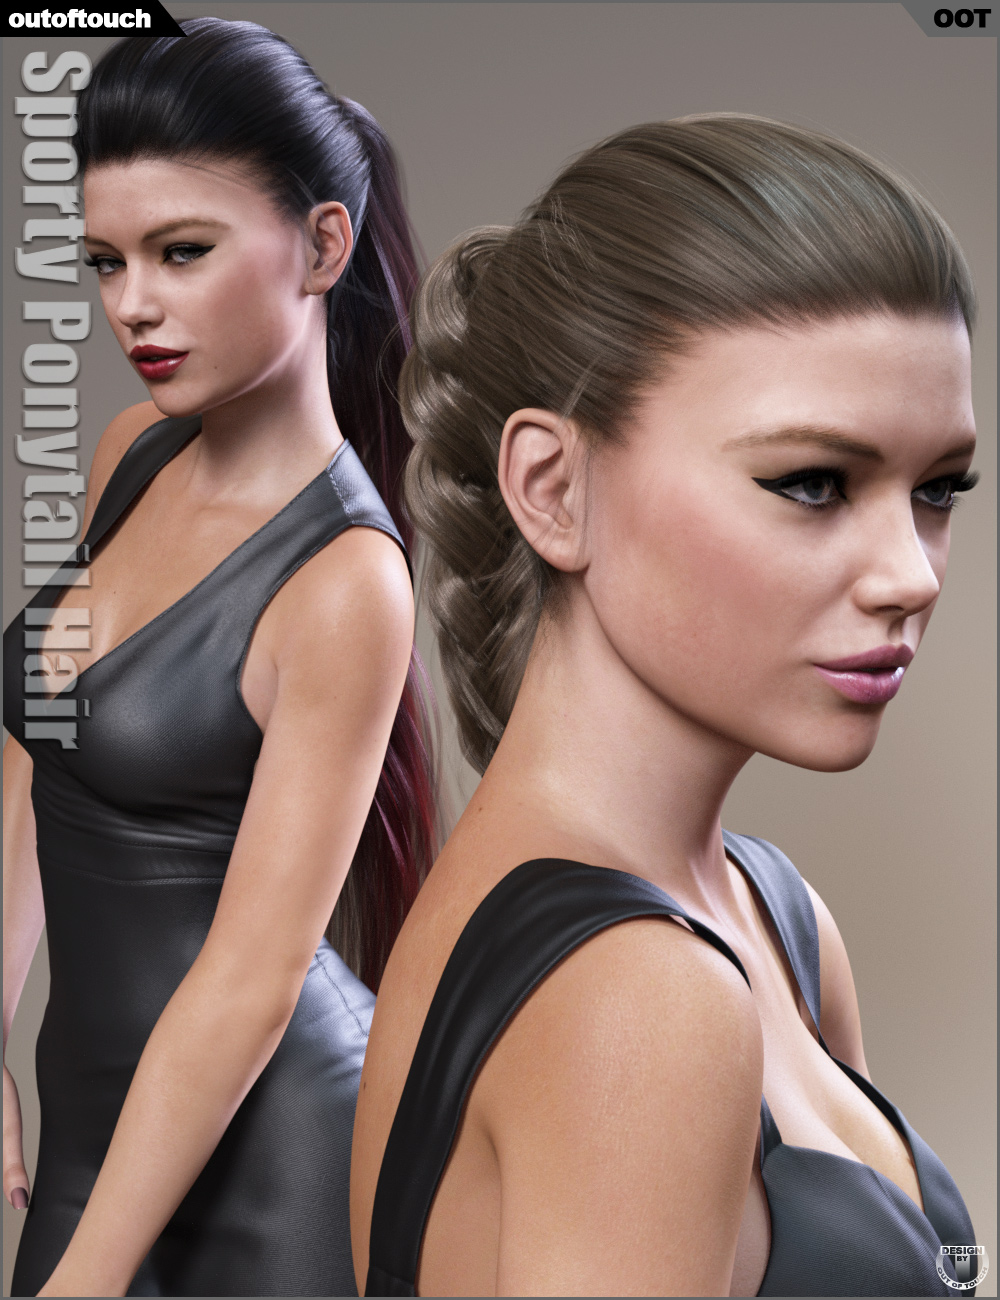 Sporty Ponytail Hair and OOT Hairblending 2.0 for Genesis 3 Female(s) by: outoftouch, 3D Models by Daz 3D